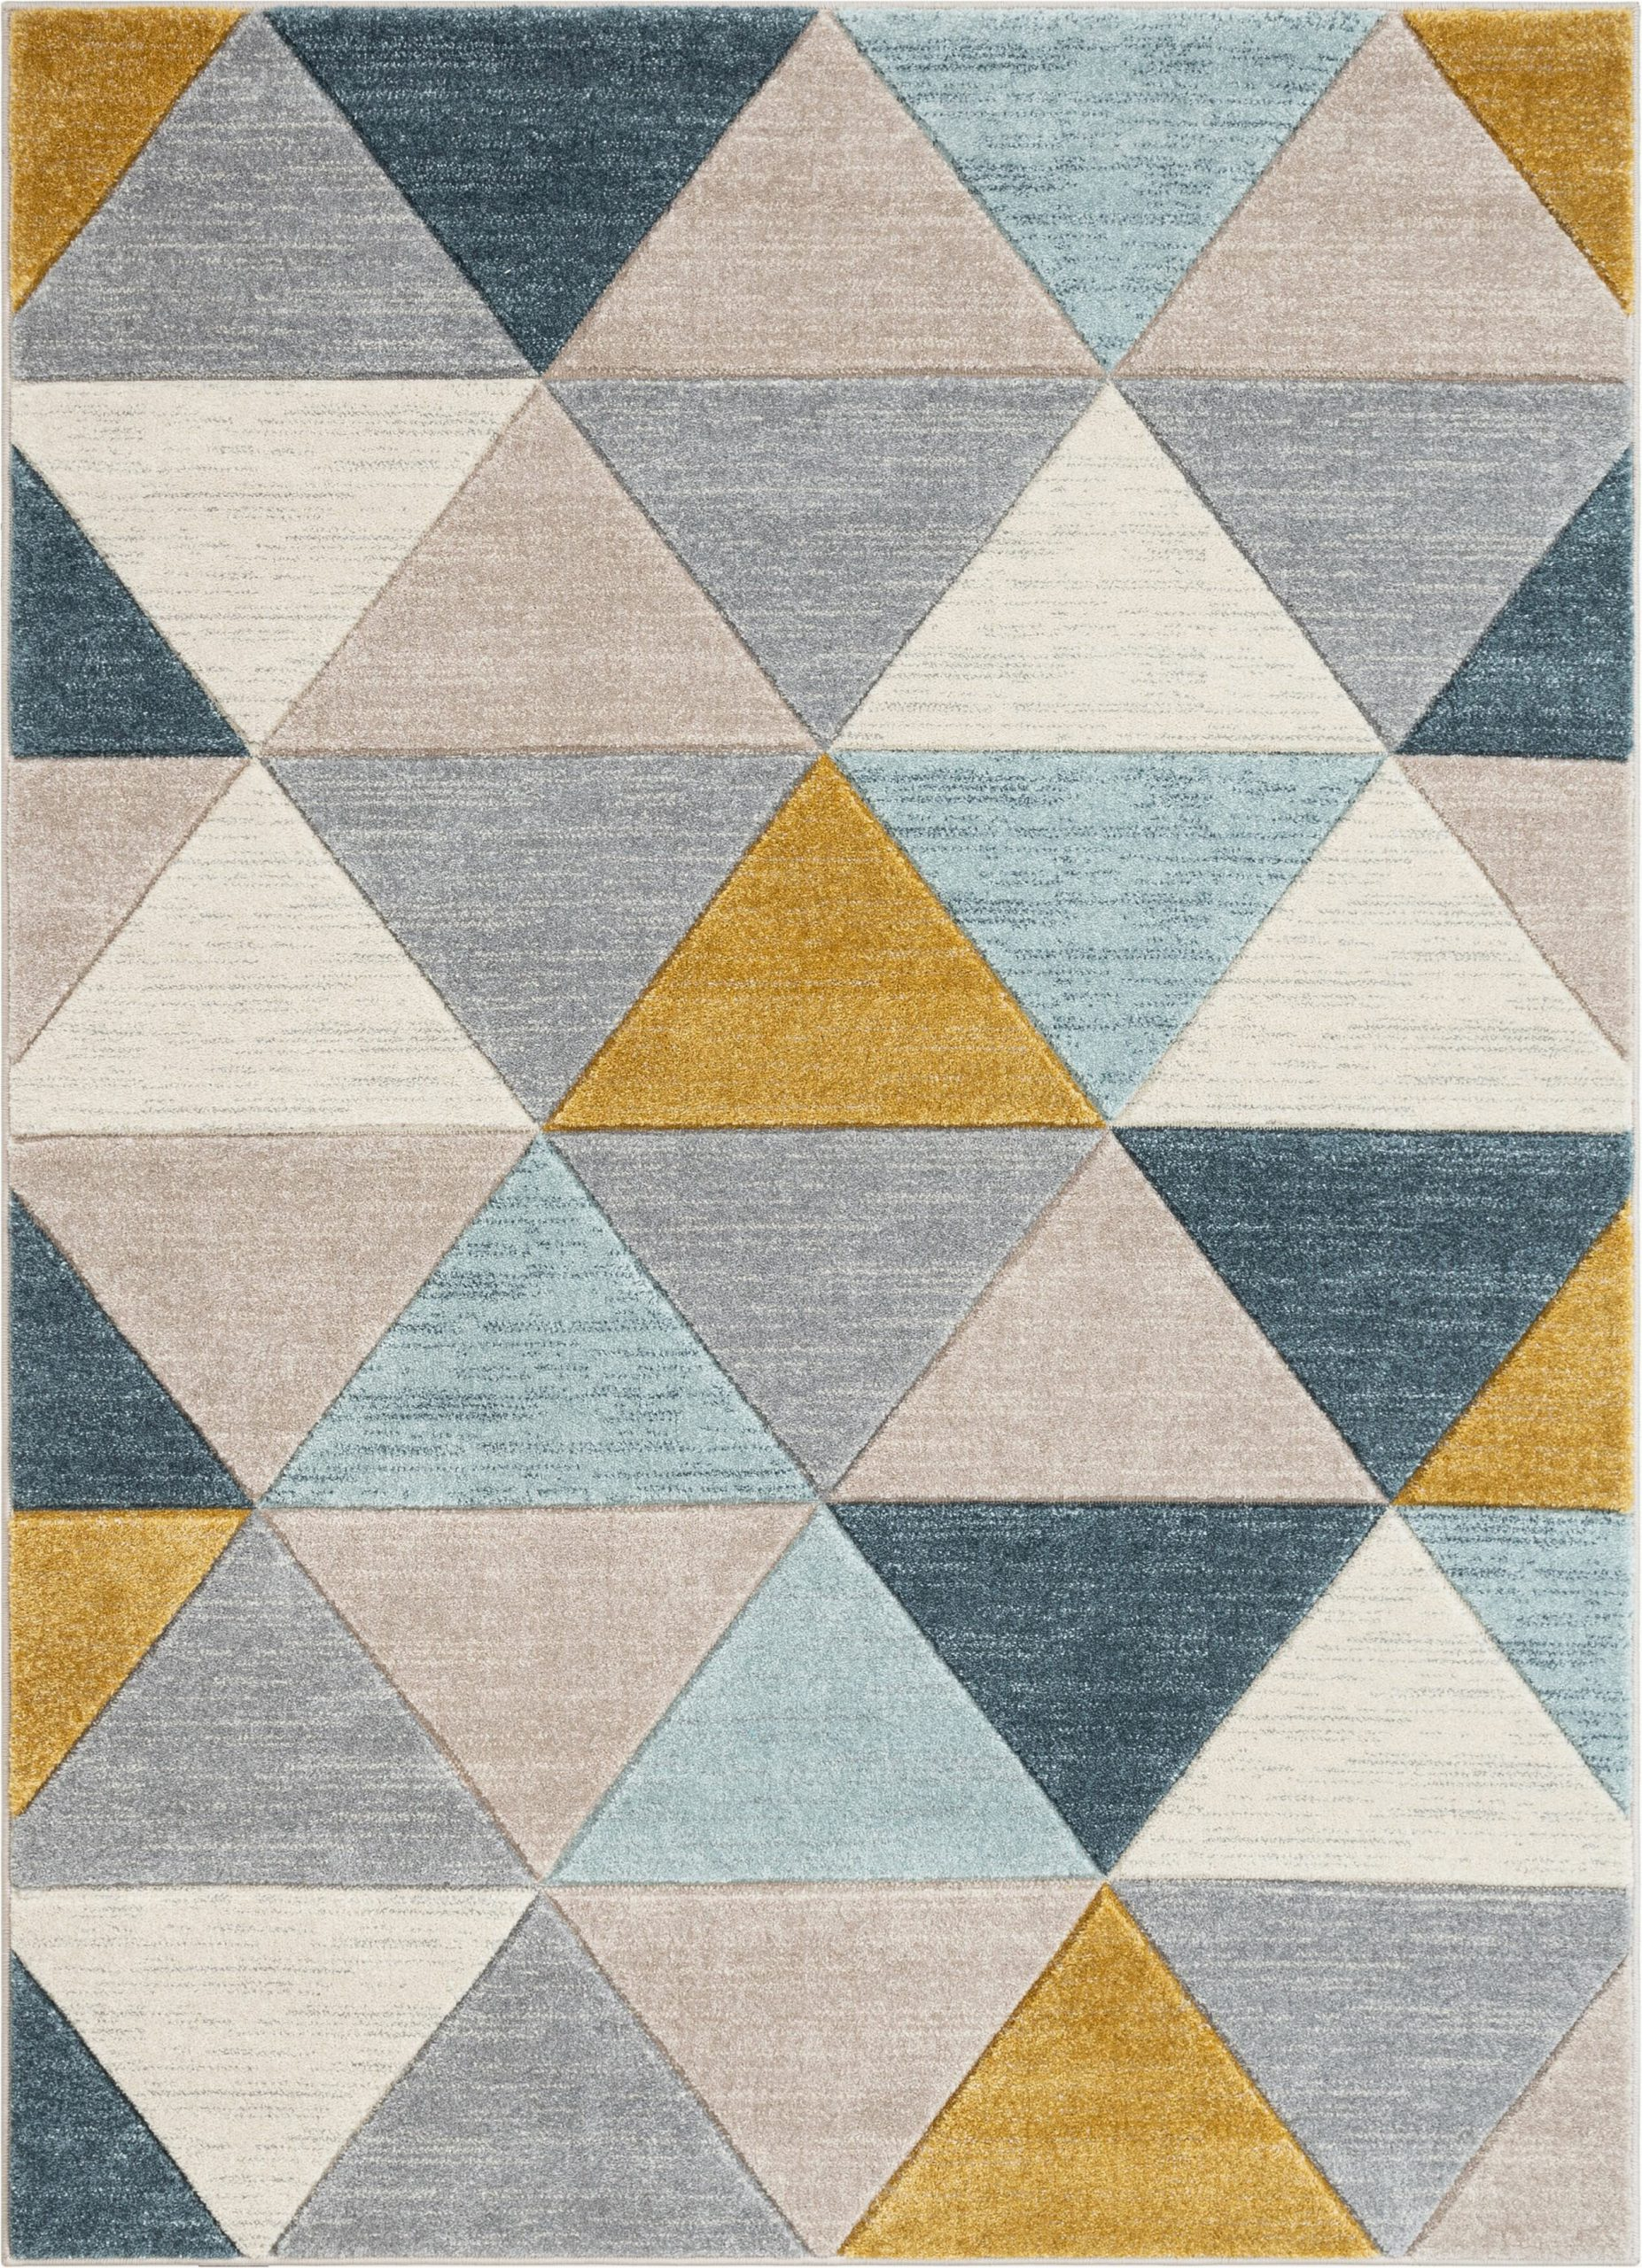 ruby rita mid century modern geometric triangles bluemintivory area rug